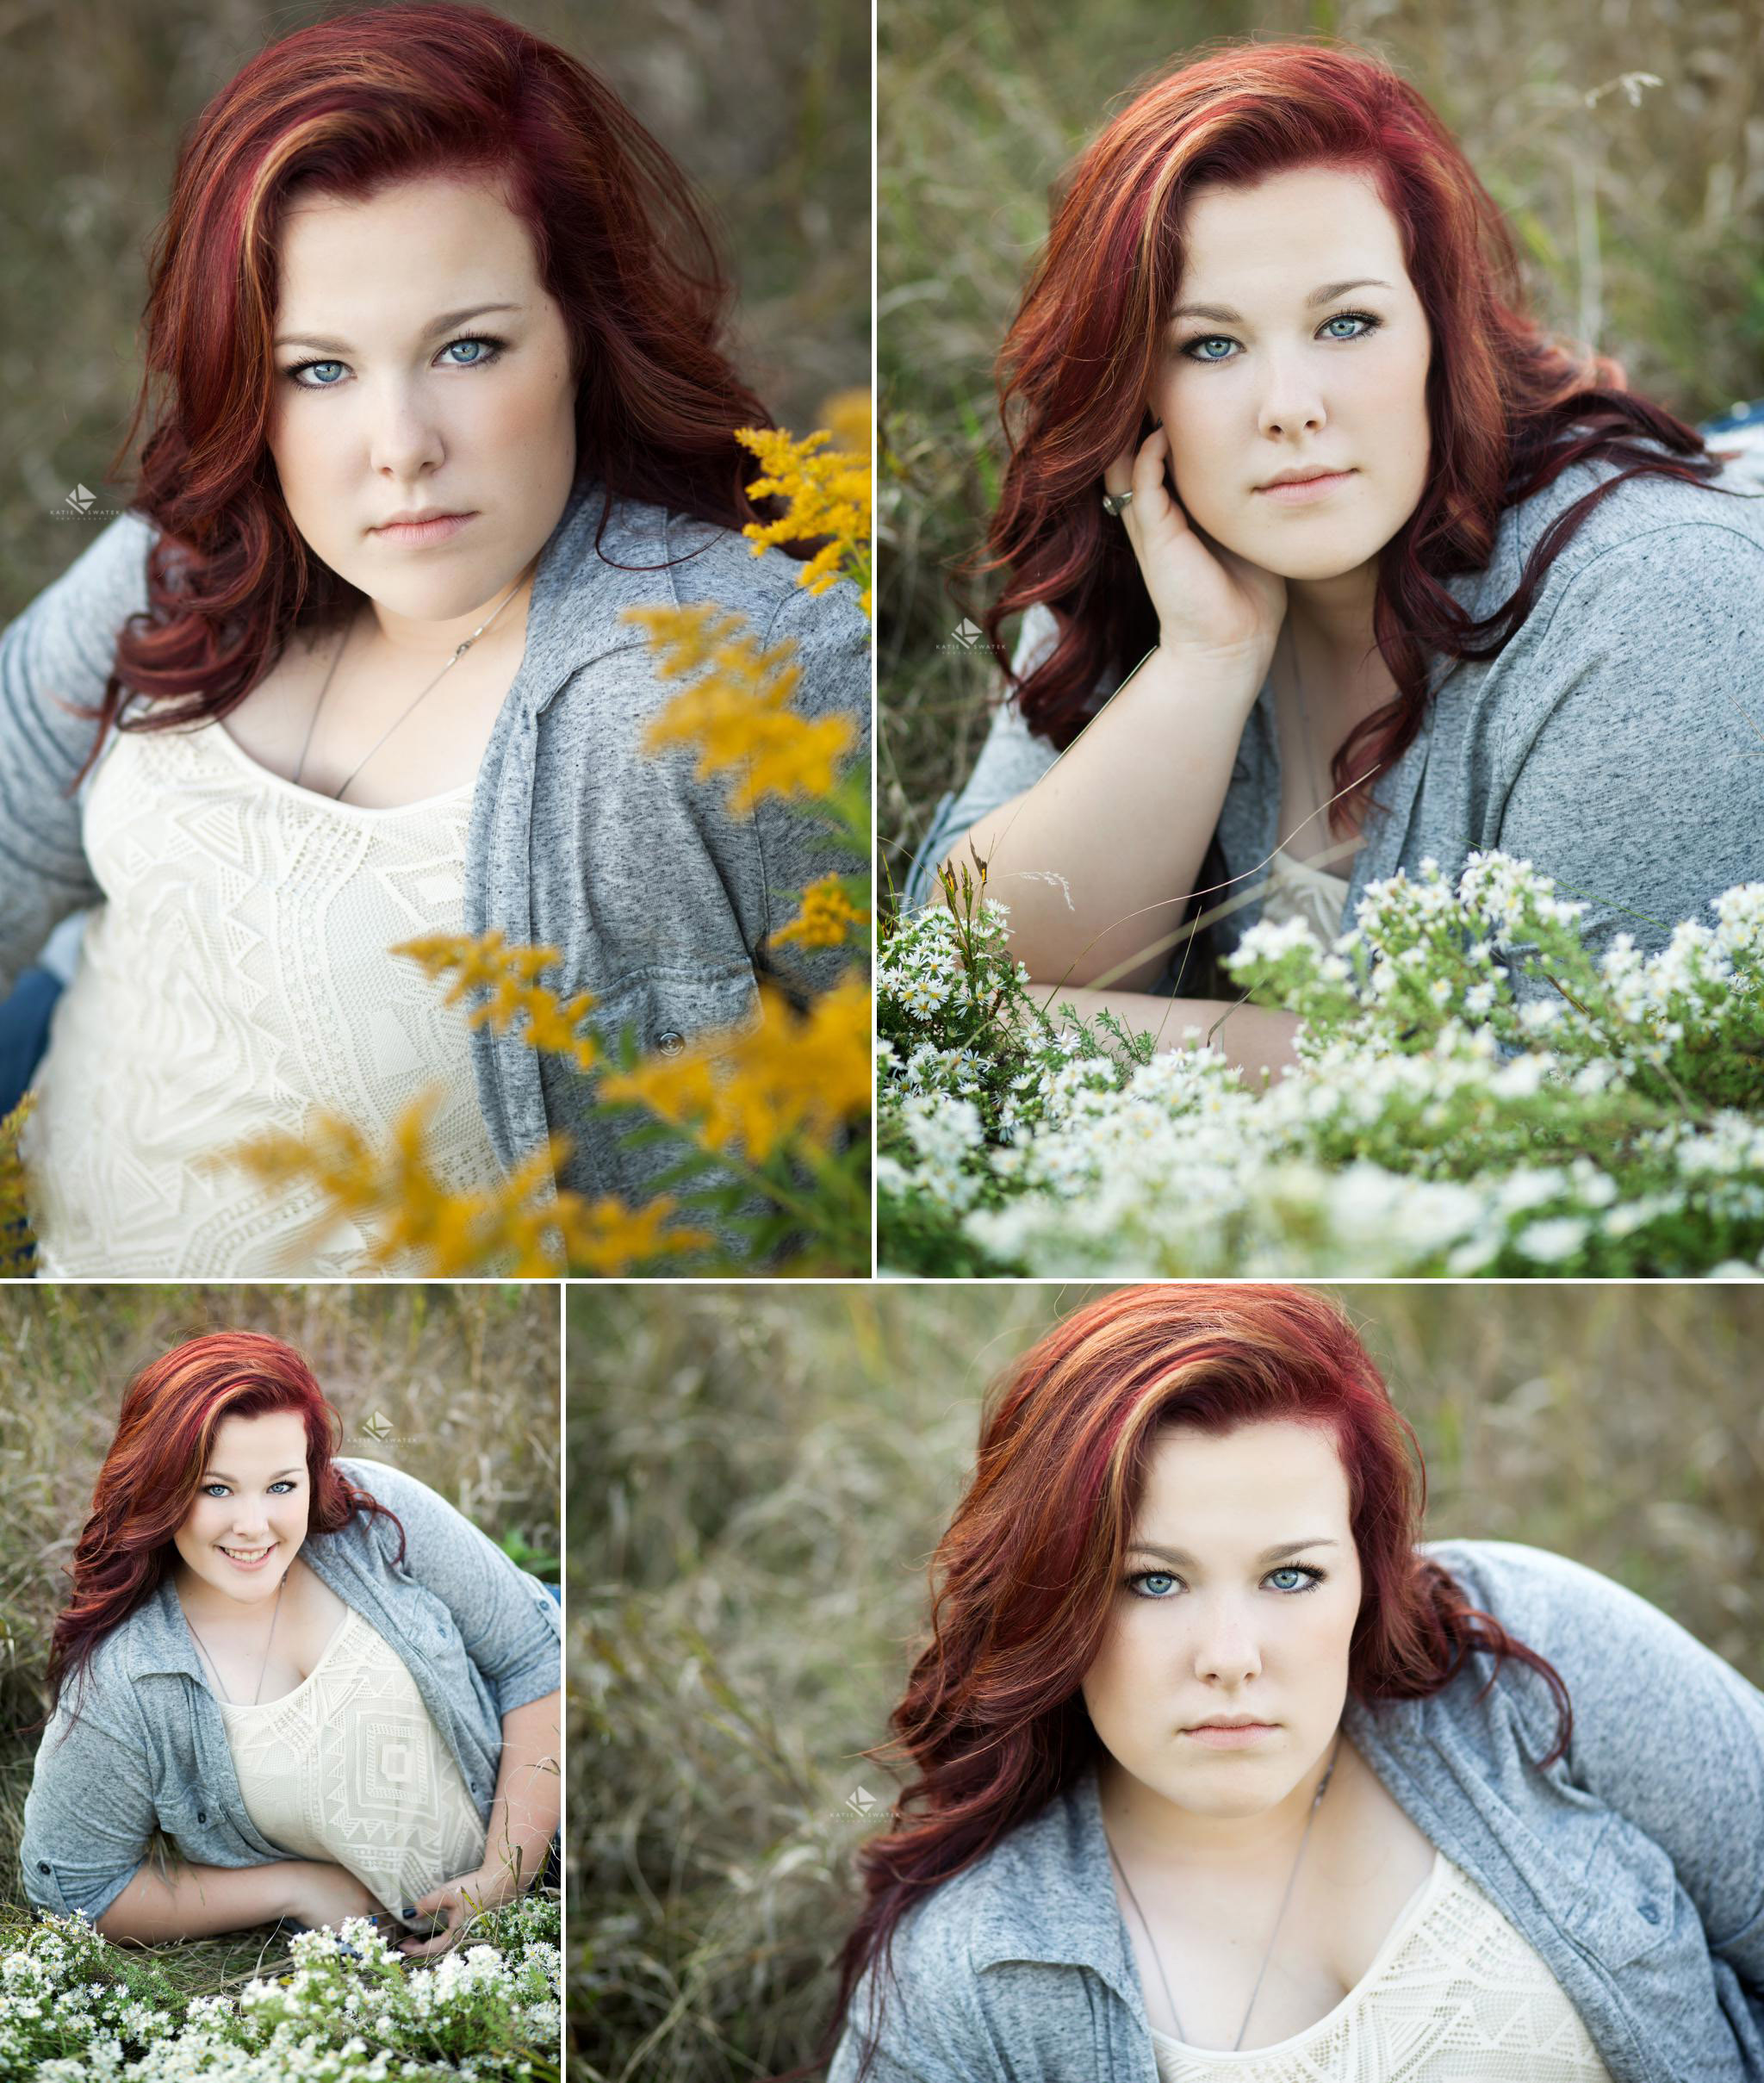 Senior Pictures in South Dakota | Country Senior Images by Katie Swatek Photography